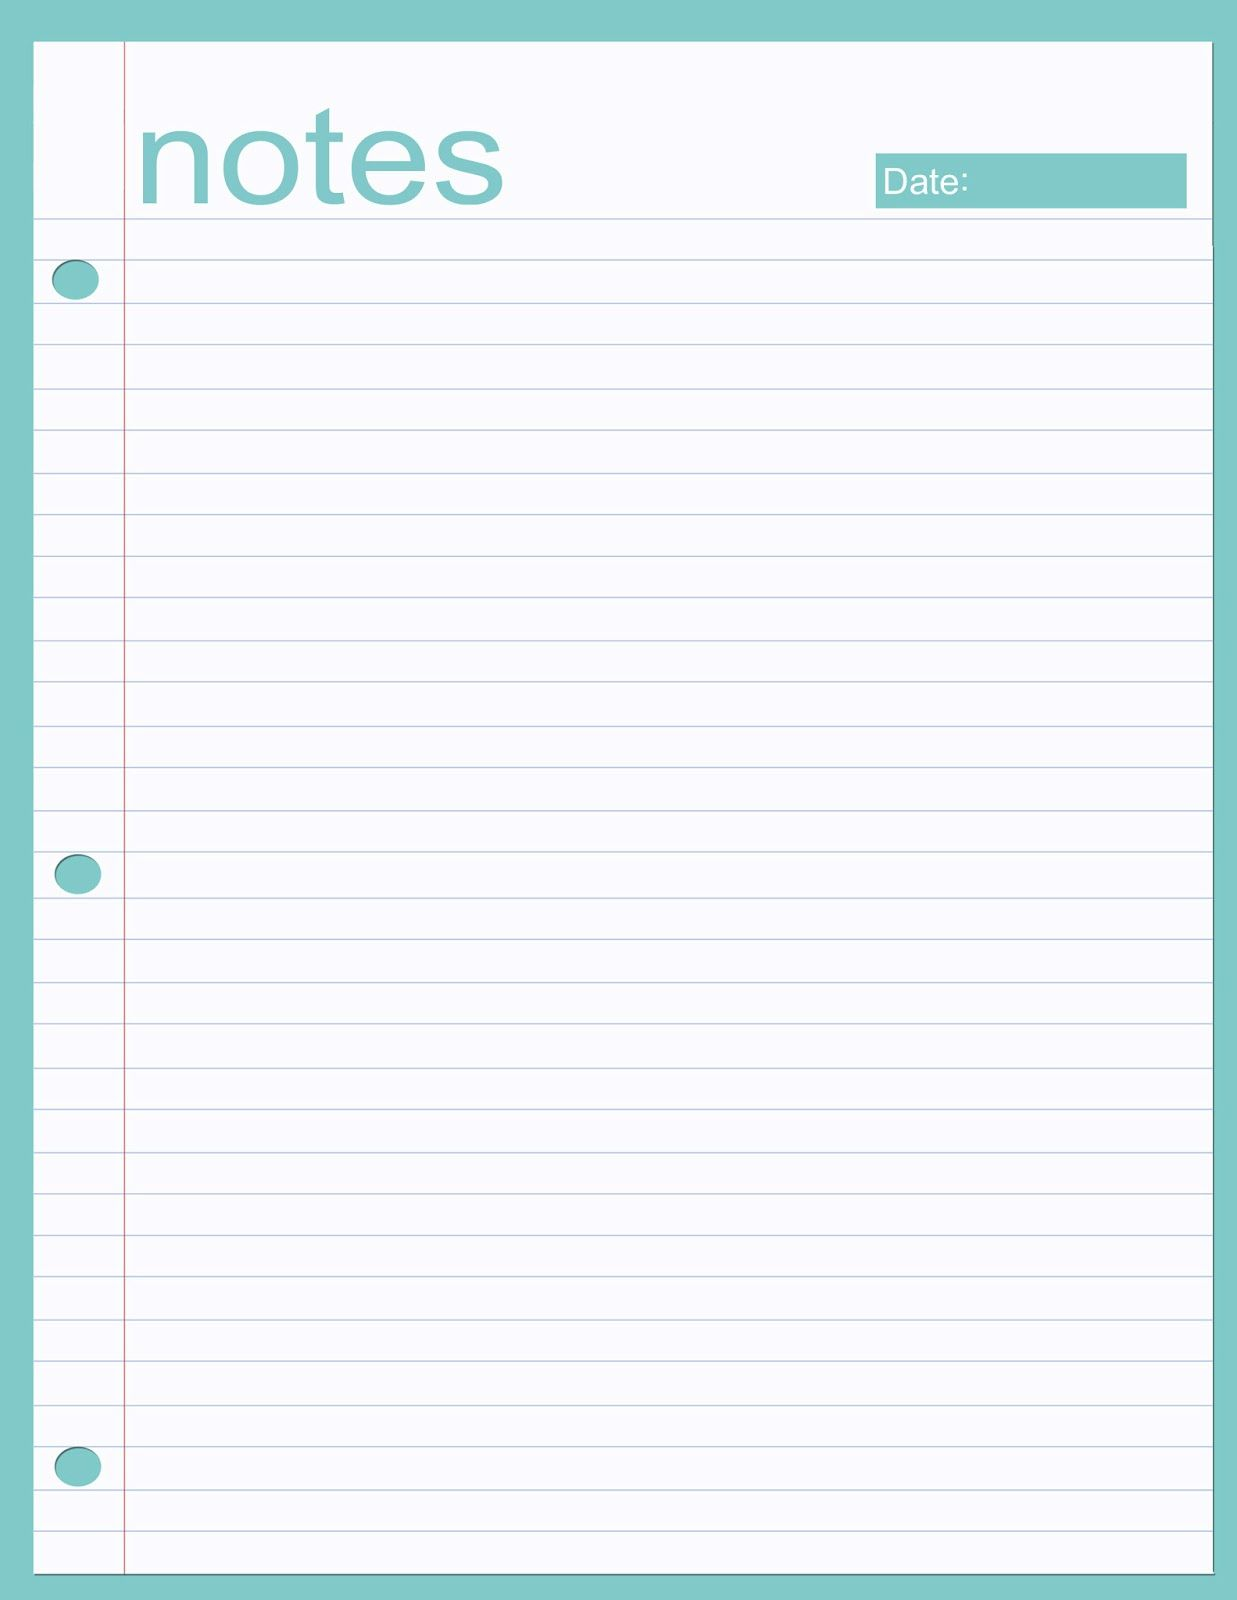 image relating to Printable Note called Printable notes web site Planners Planner webpages, Printable